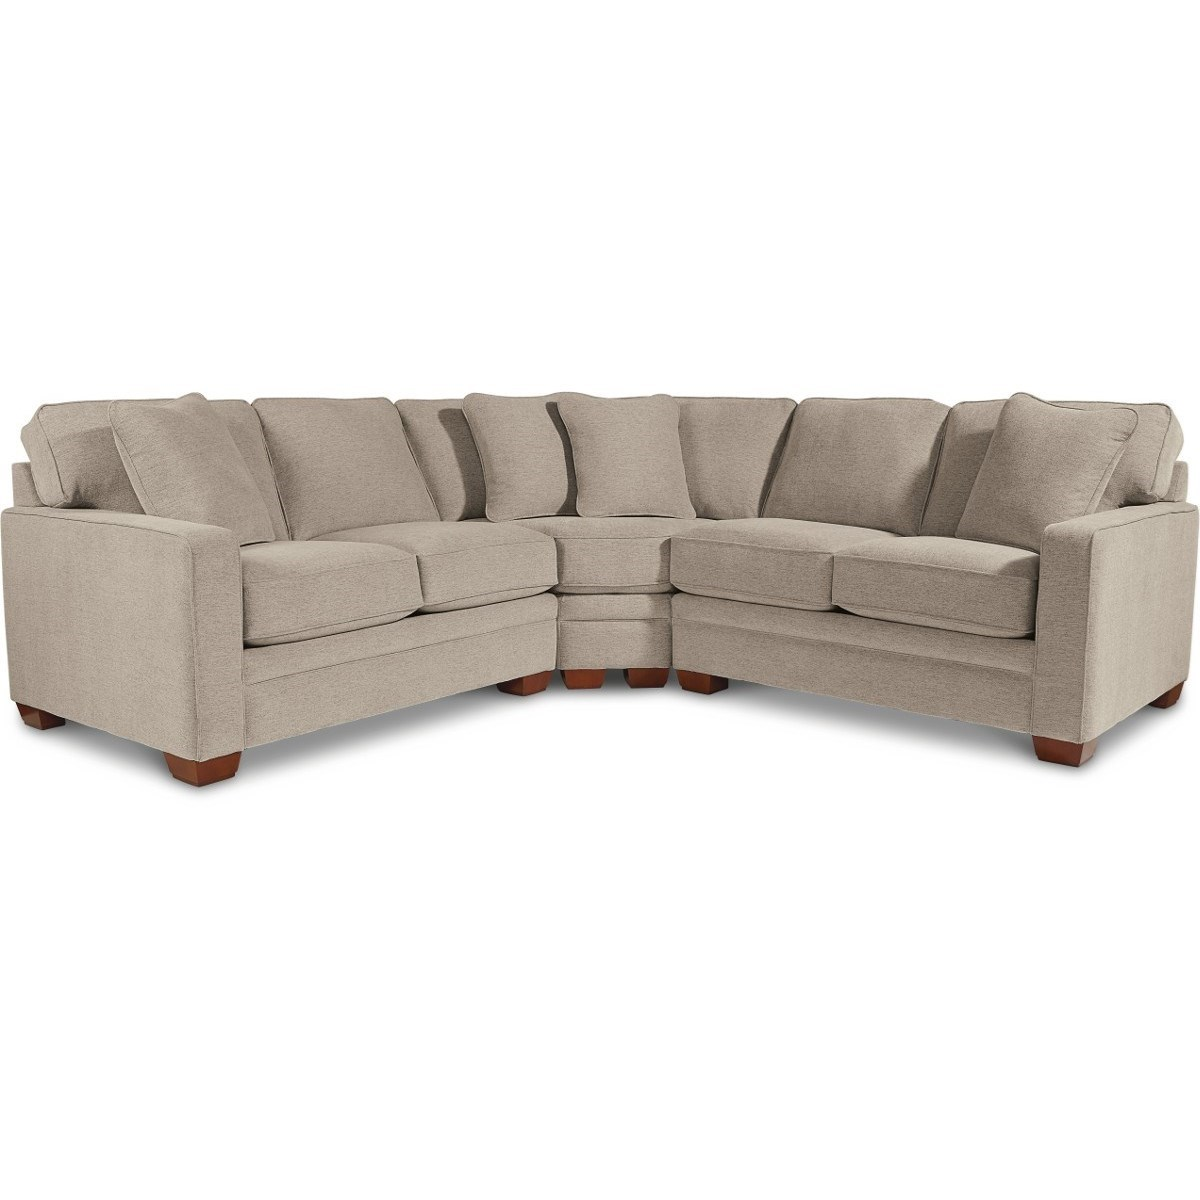 Contemporary 3-Piece Sectional with Wedge